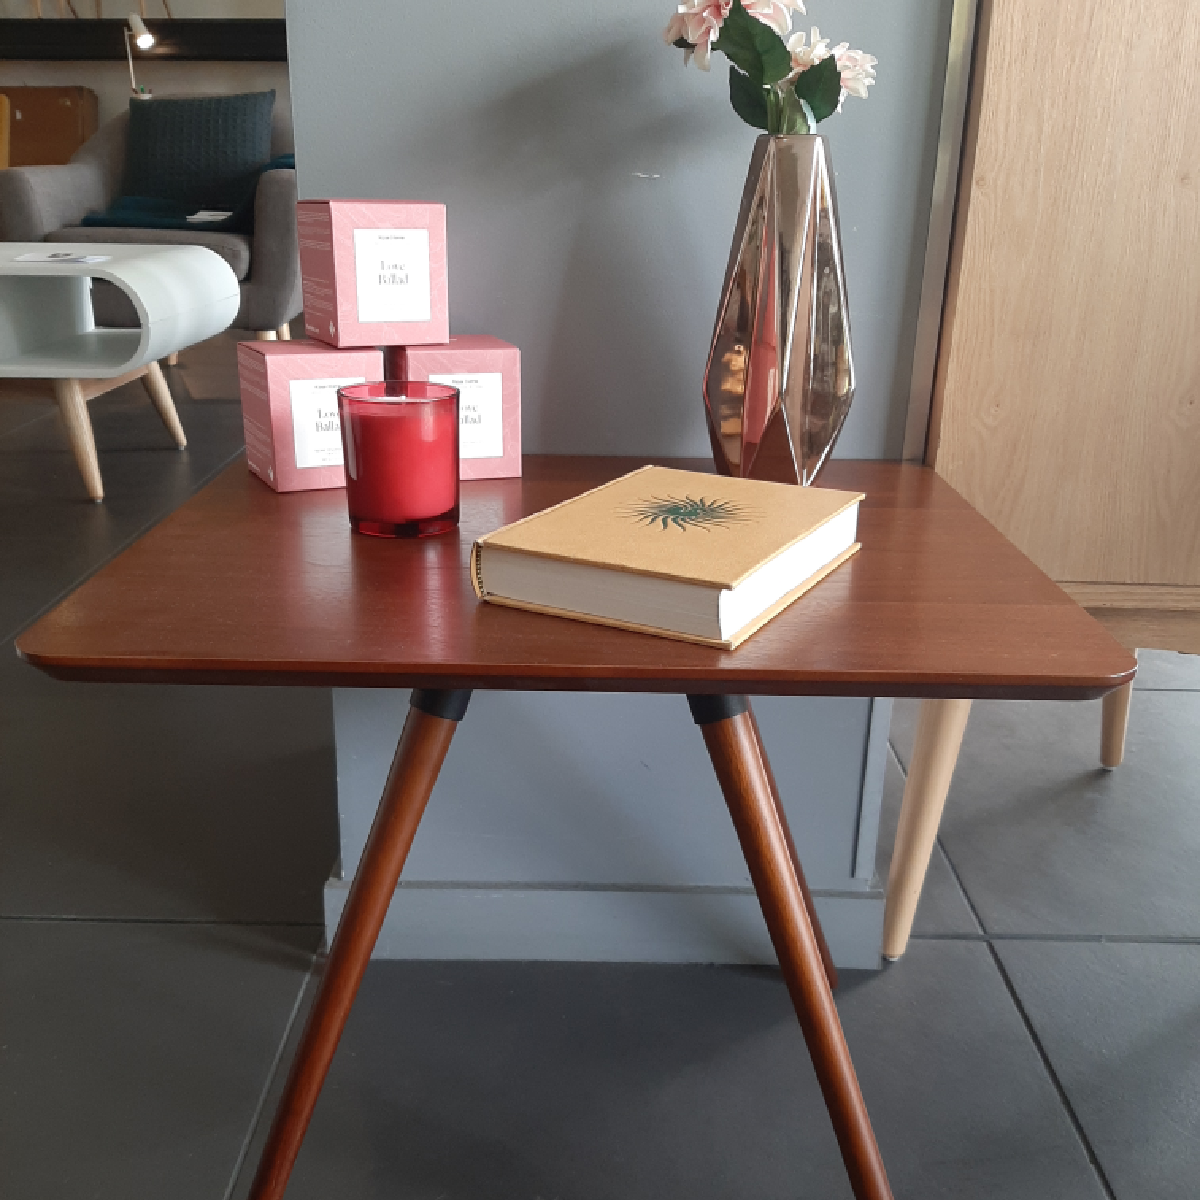 Petite table ronde design scandinave bois noyer for Petite table ronde scandinave